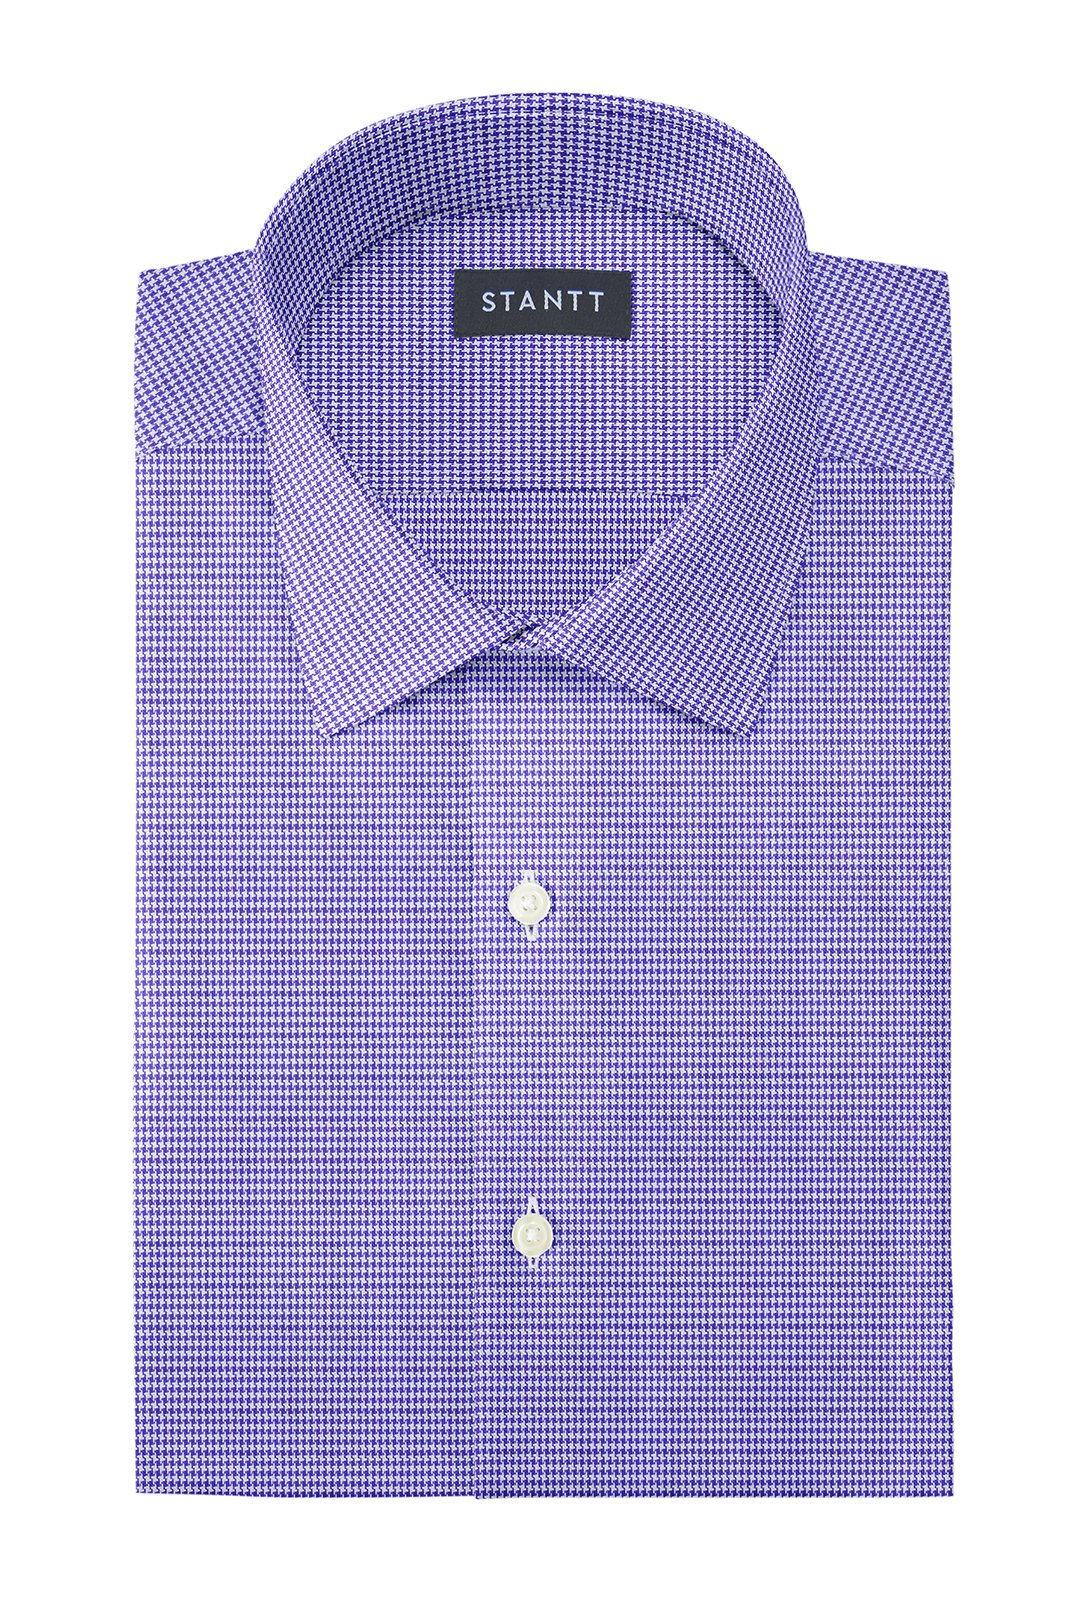 Purple Fancy Houndstooth: Modified-Spread Collar, French Cuff